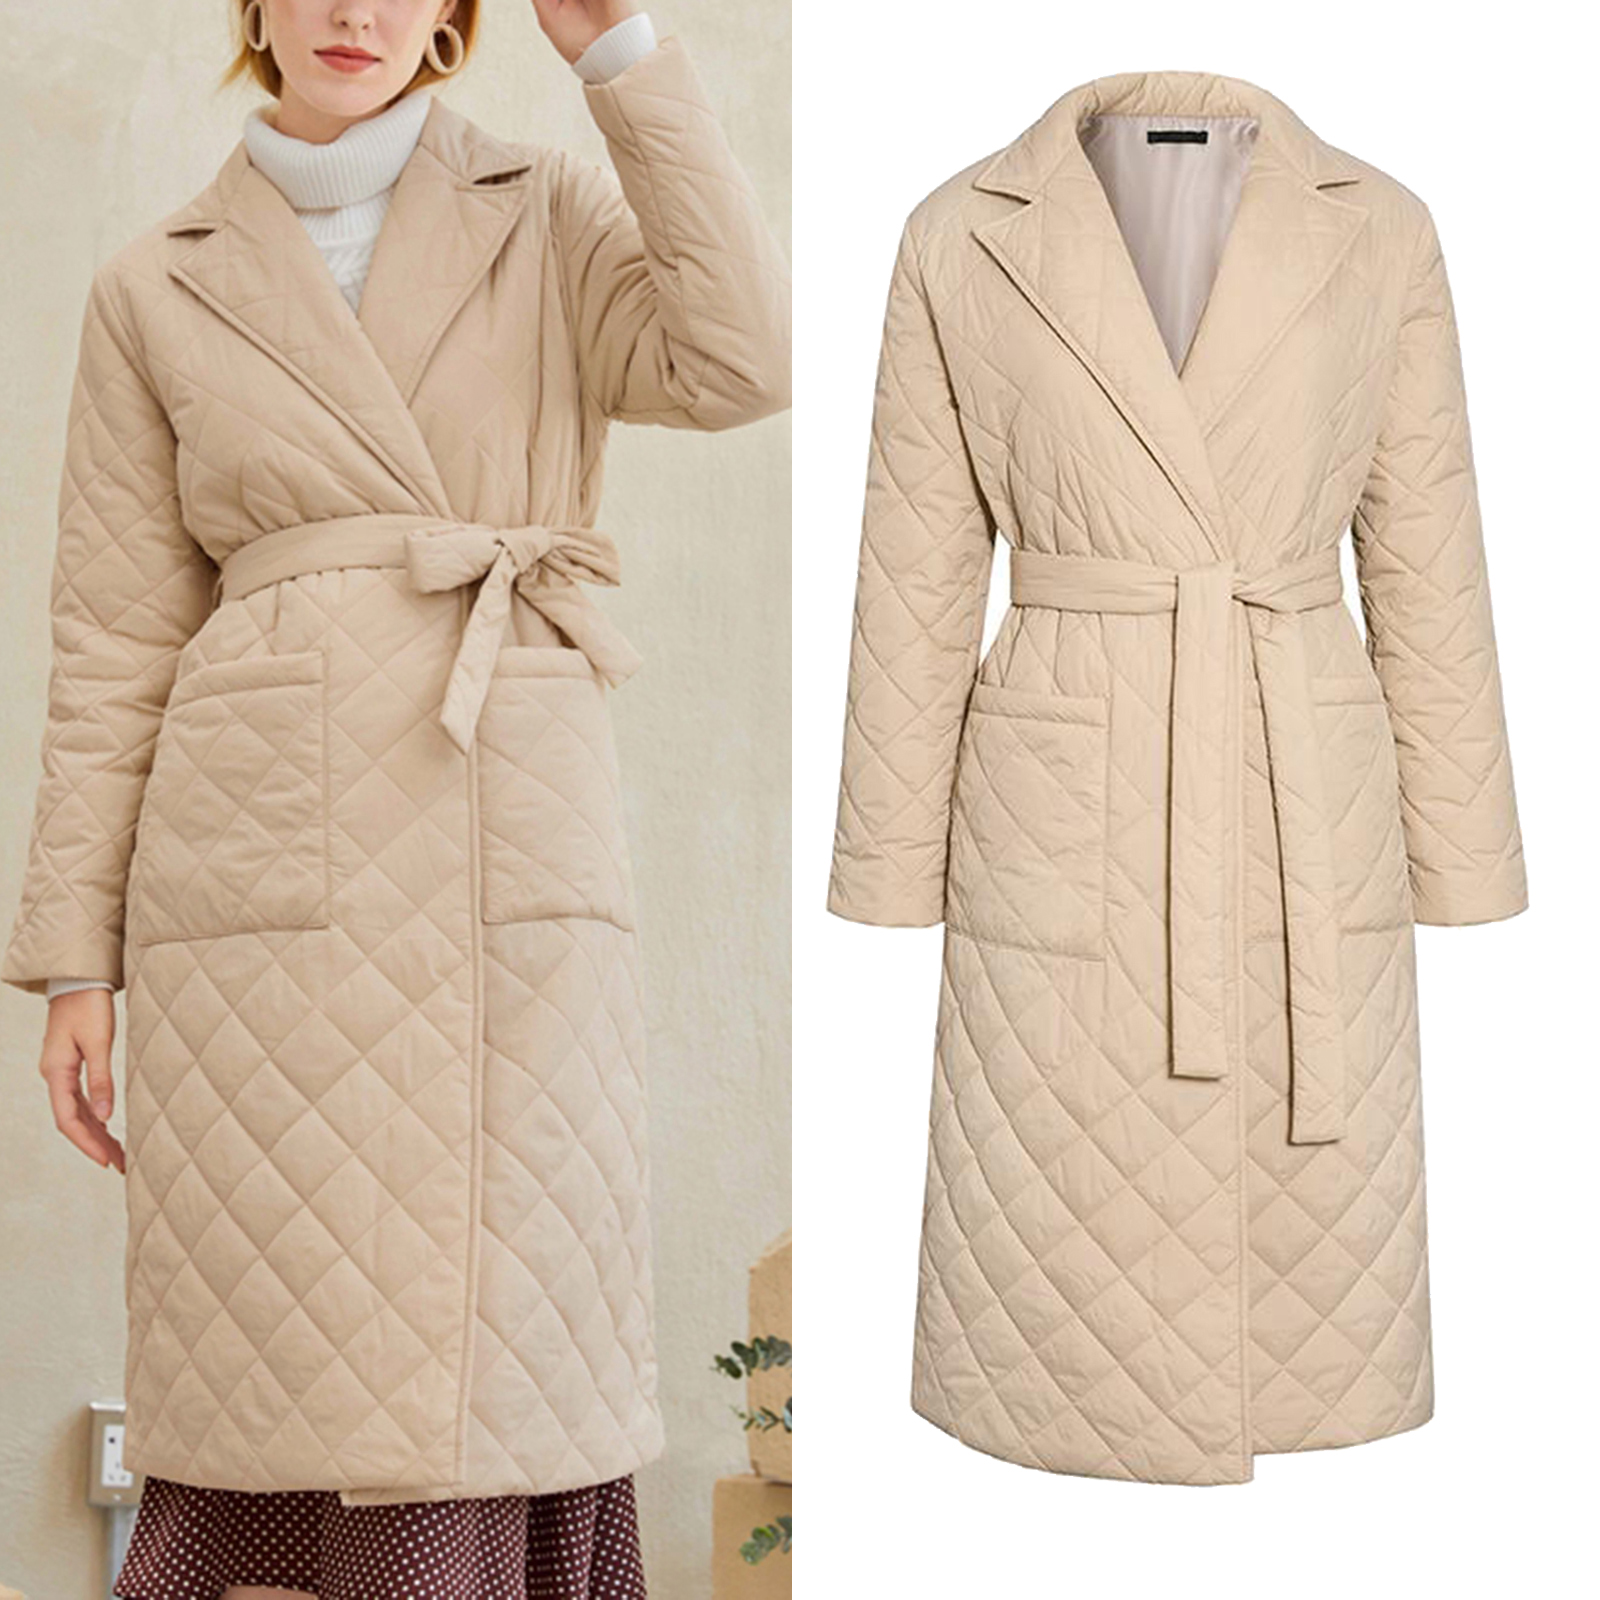 Trench Coats for Women,Autumn&Winter Lapel Faux Wool Coat Trench Jacket Long Sleeve Overcoat Outwear